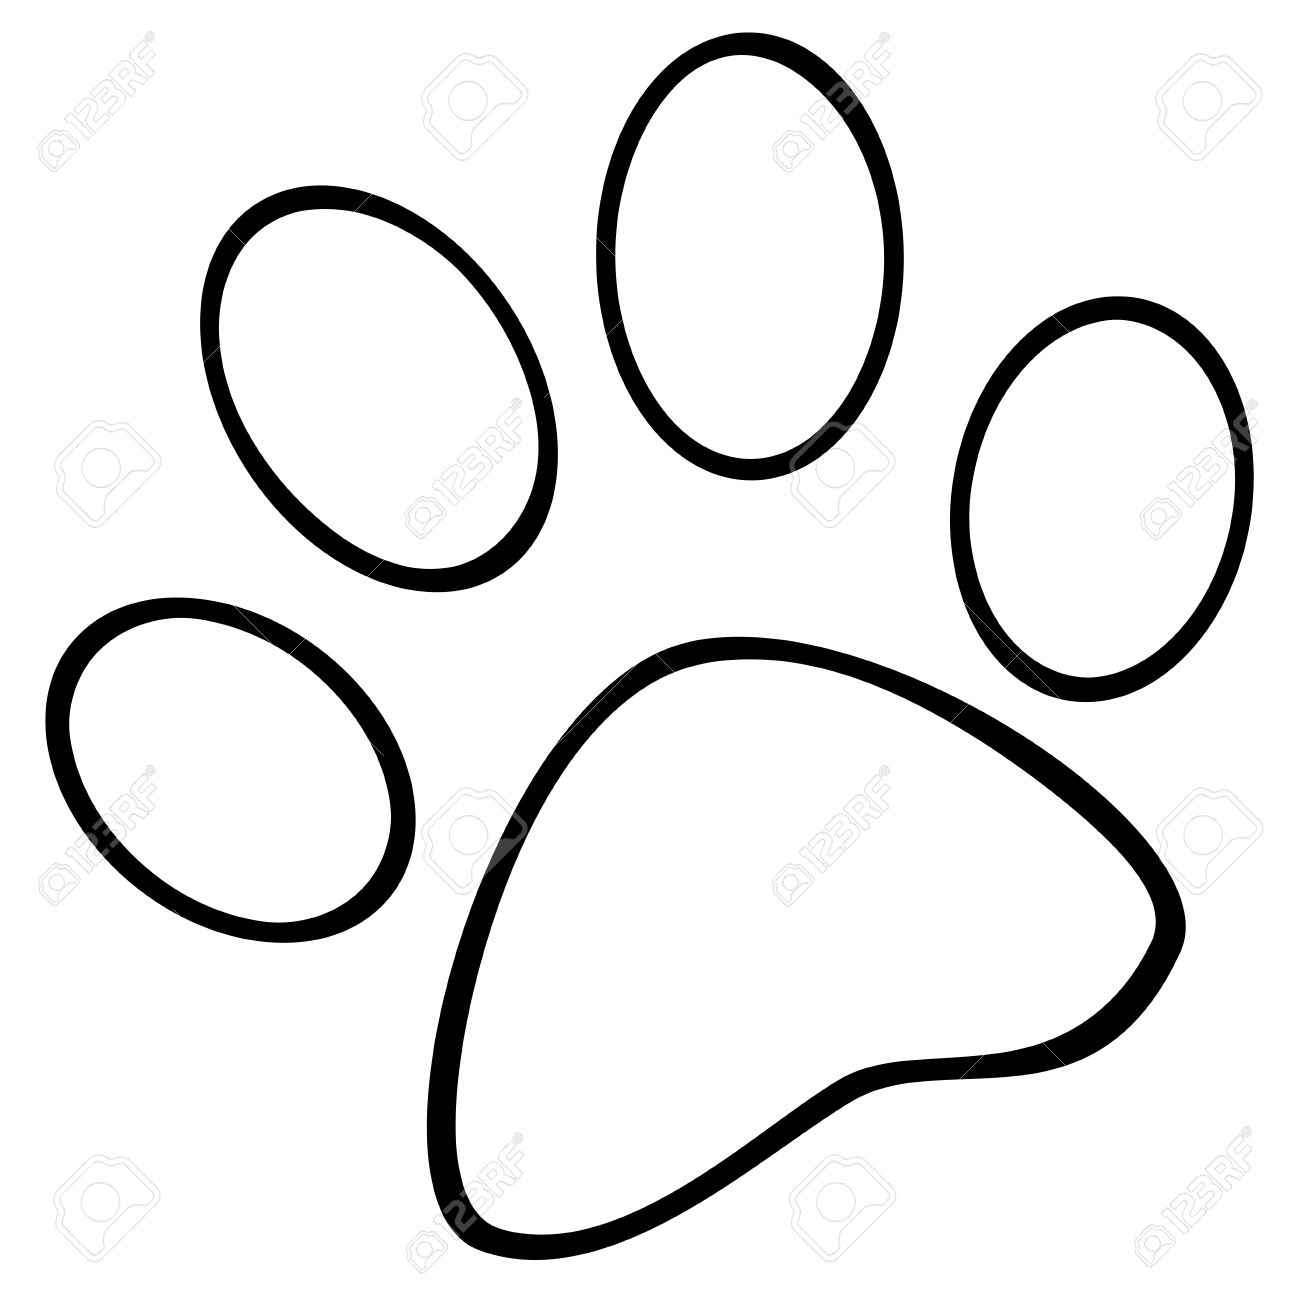 How To Get A Dogs Paw Print